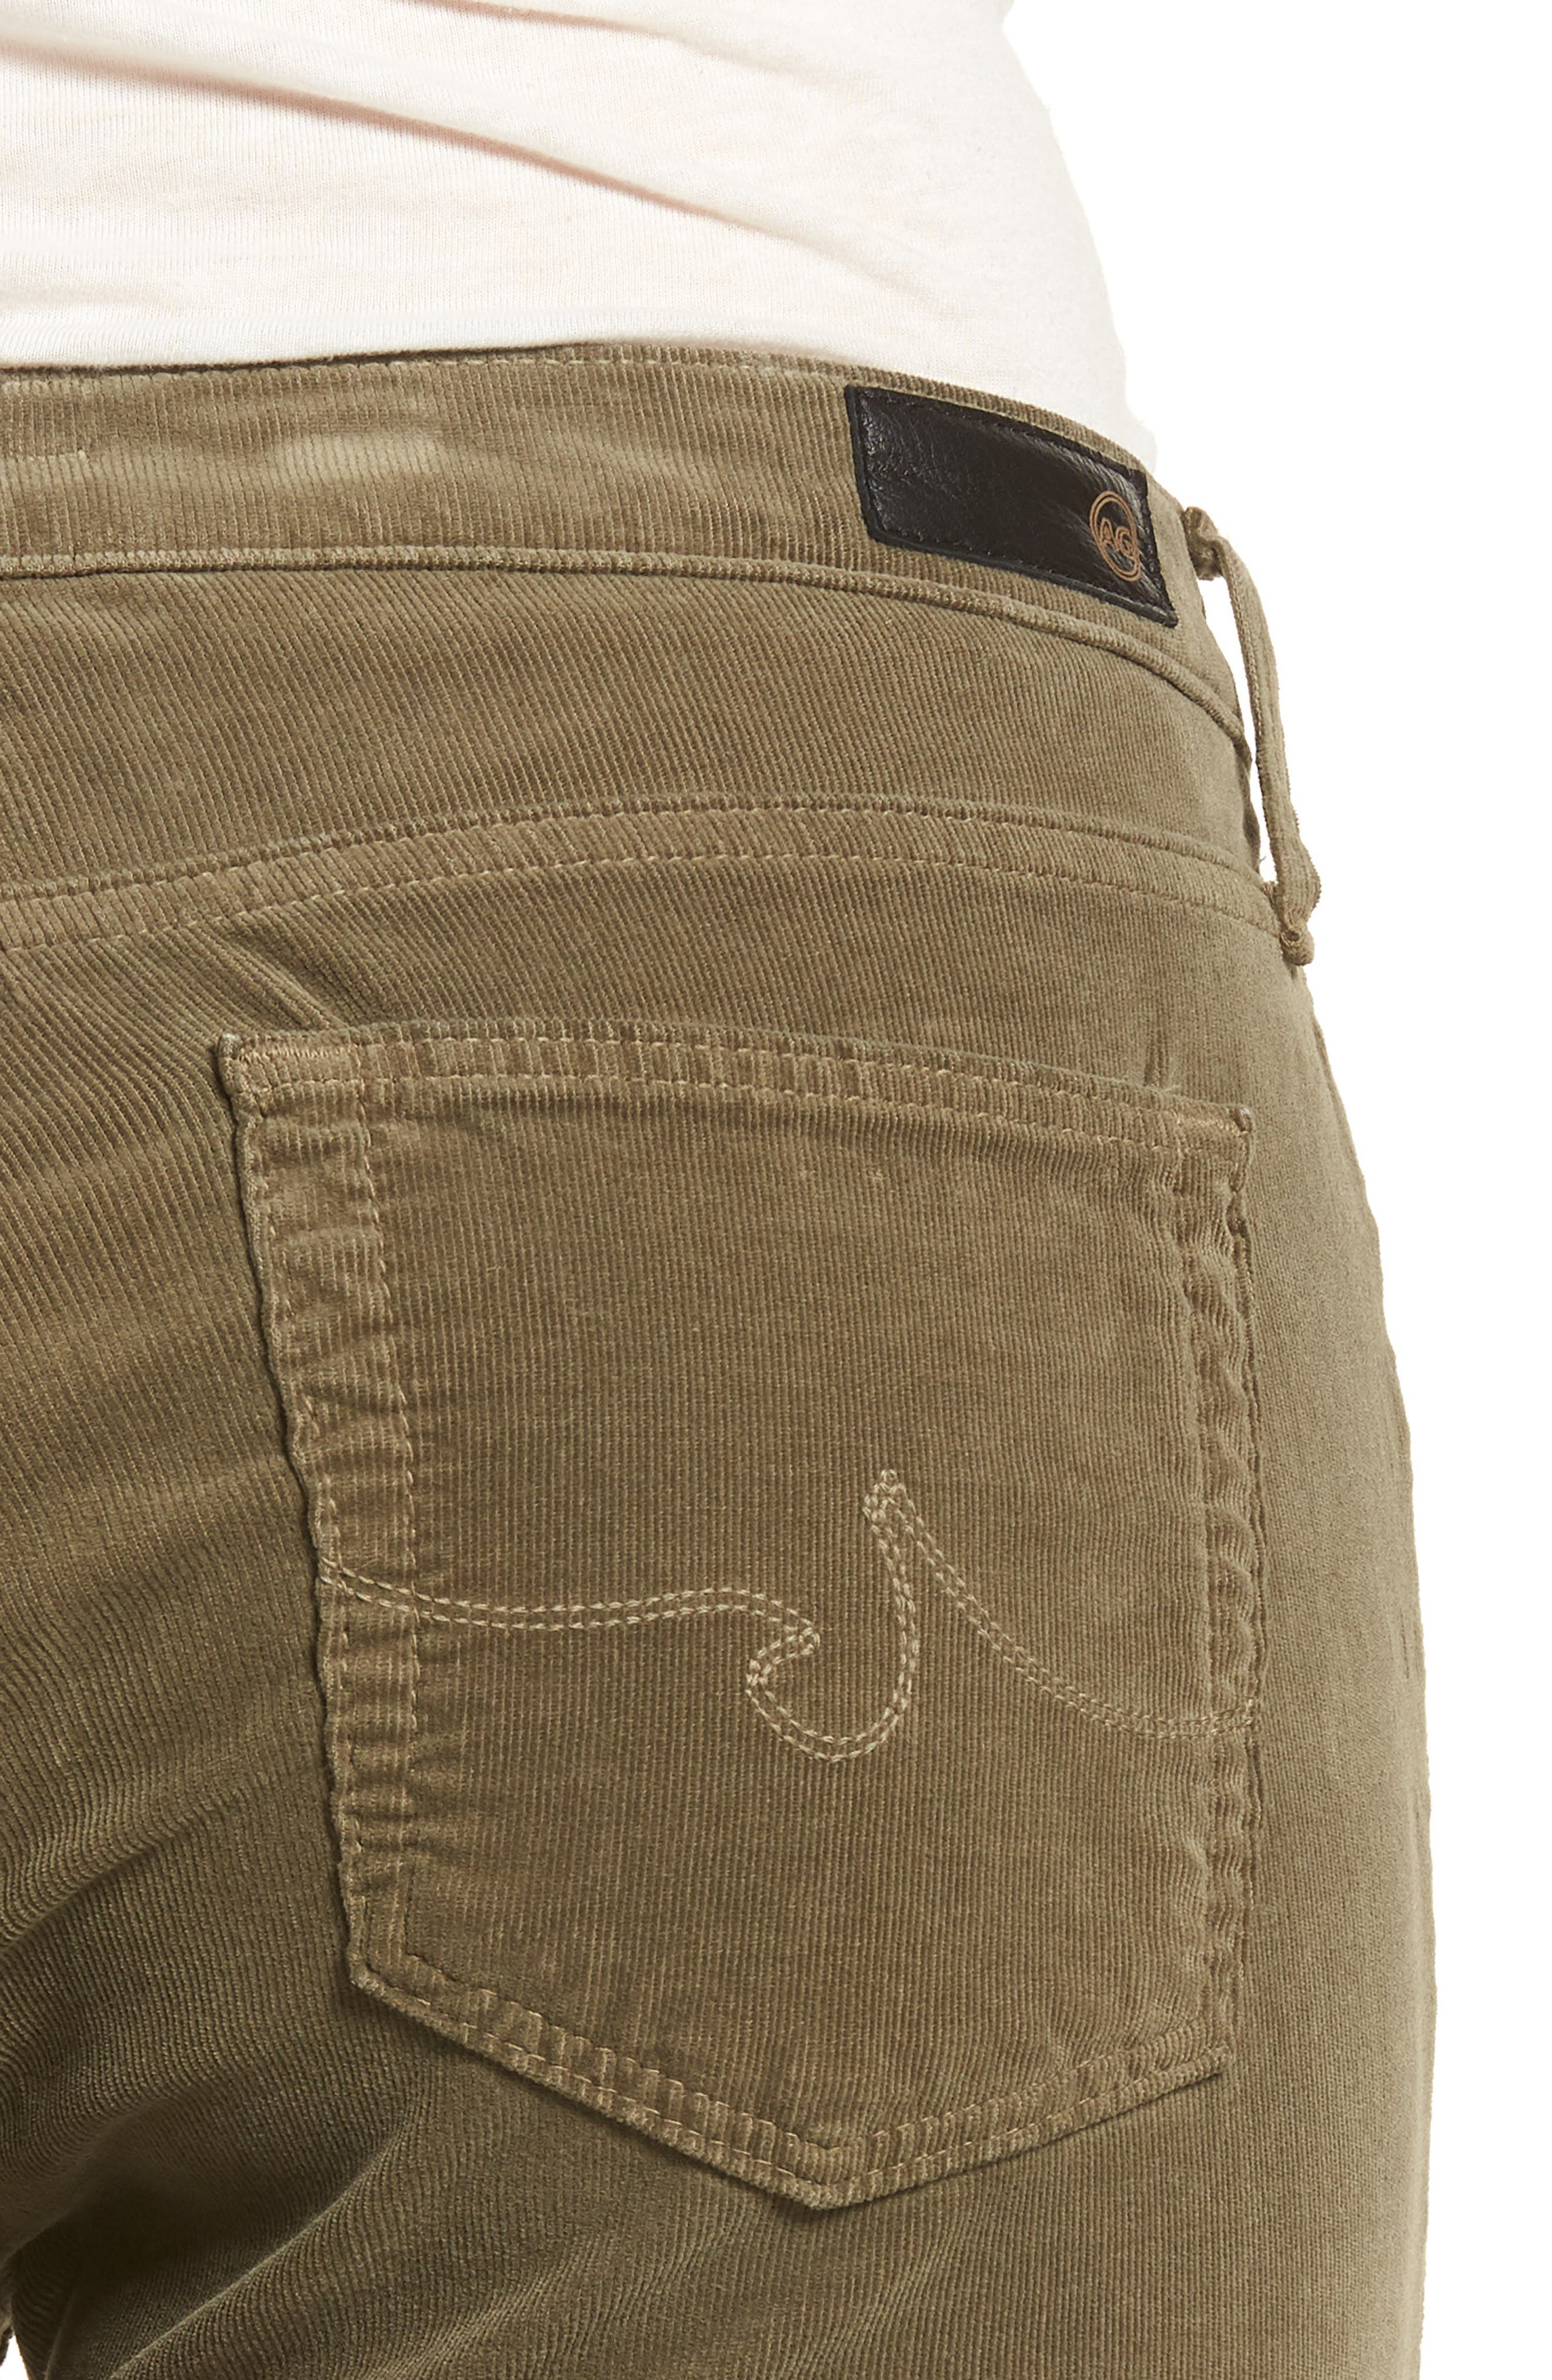 'Prima' Corduroy Skinny Pants,                             Alternate thumbnail 4, color,                             Dried Agave